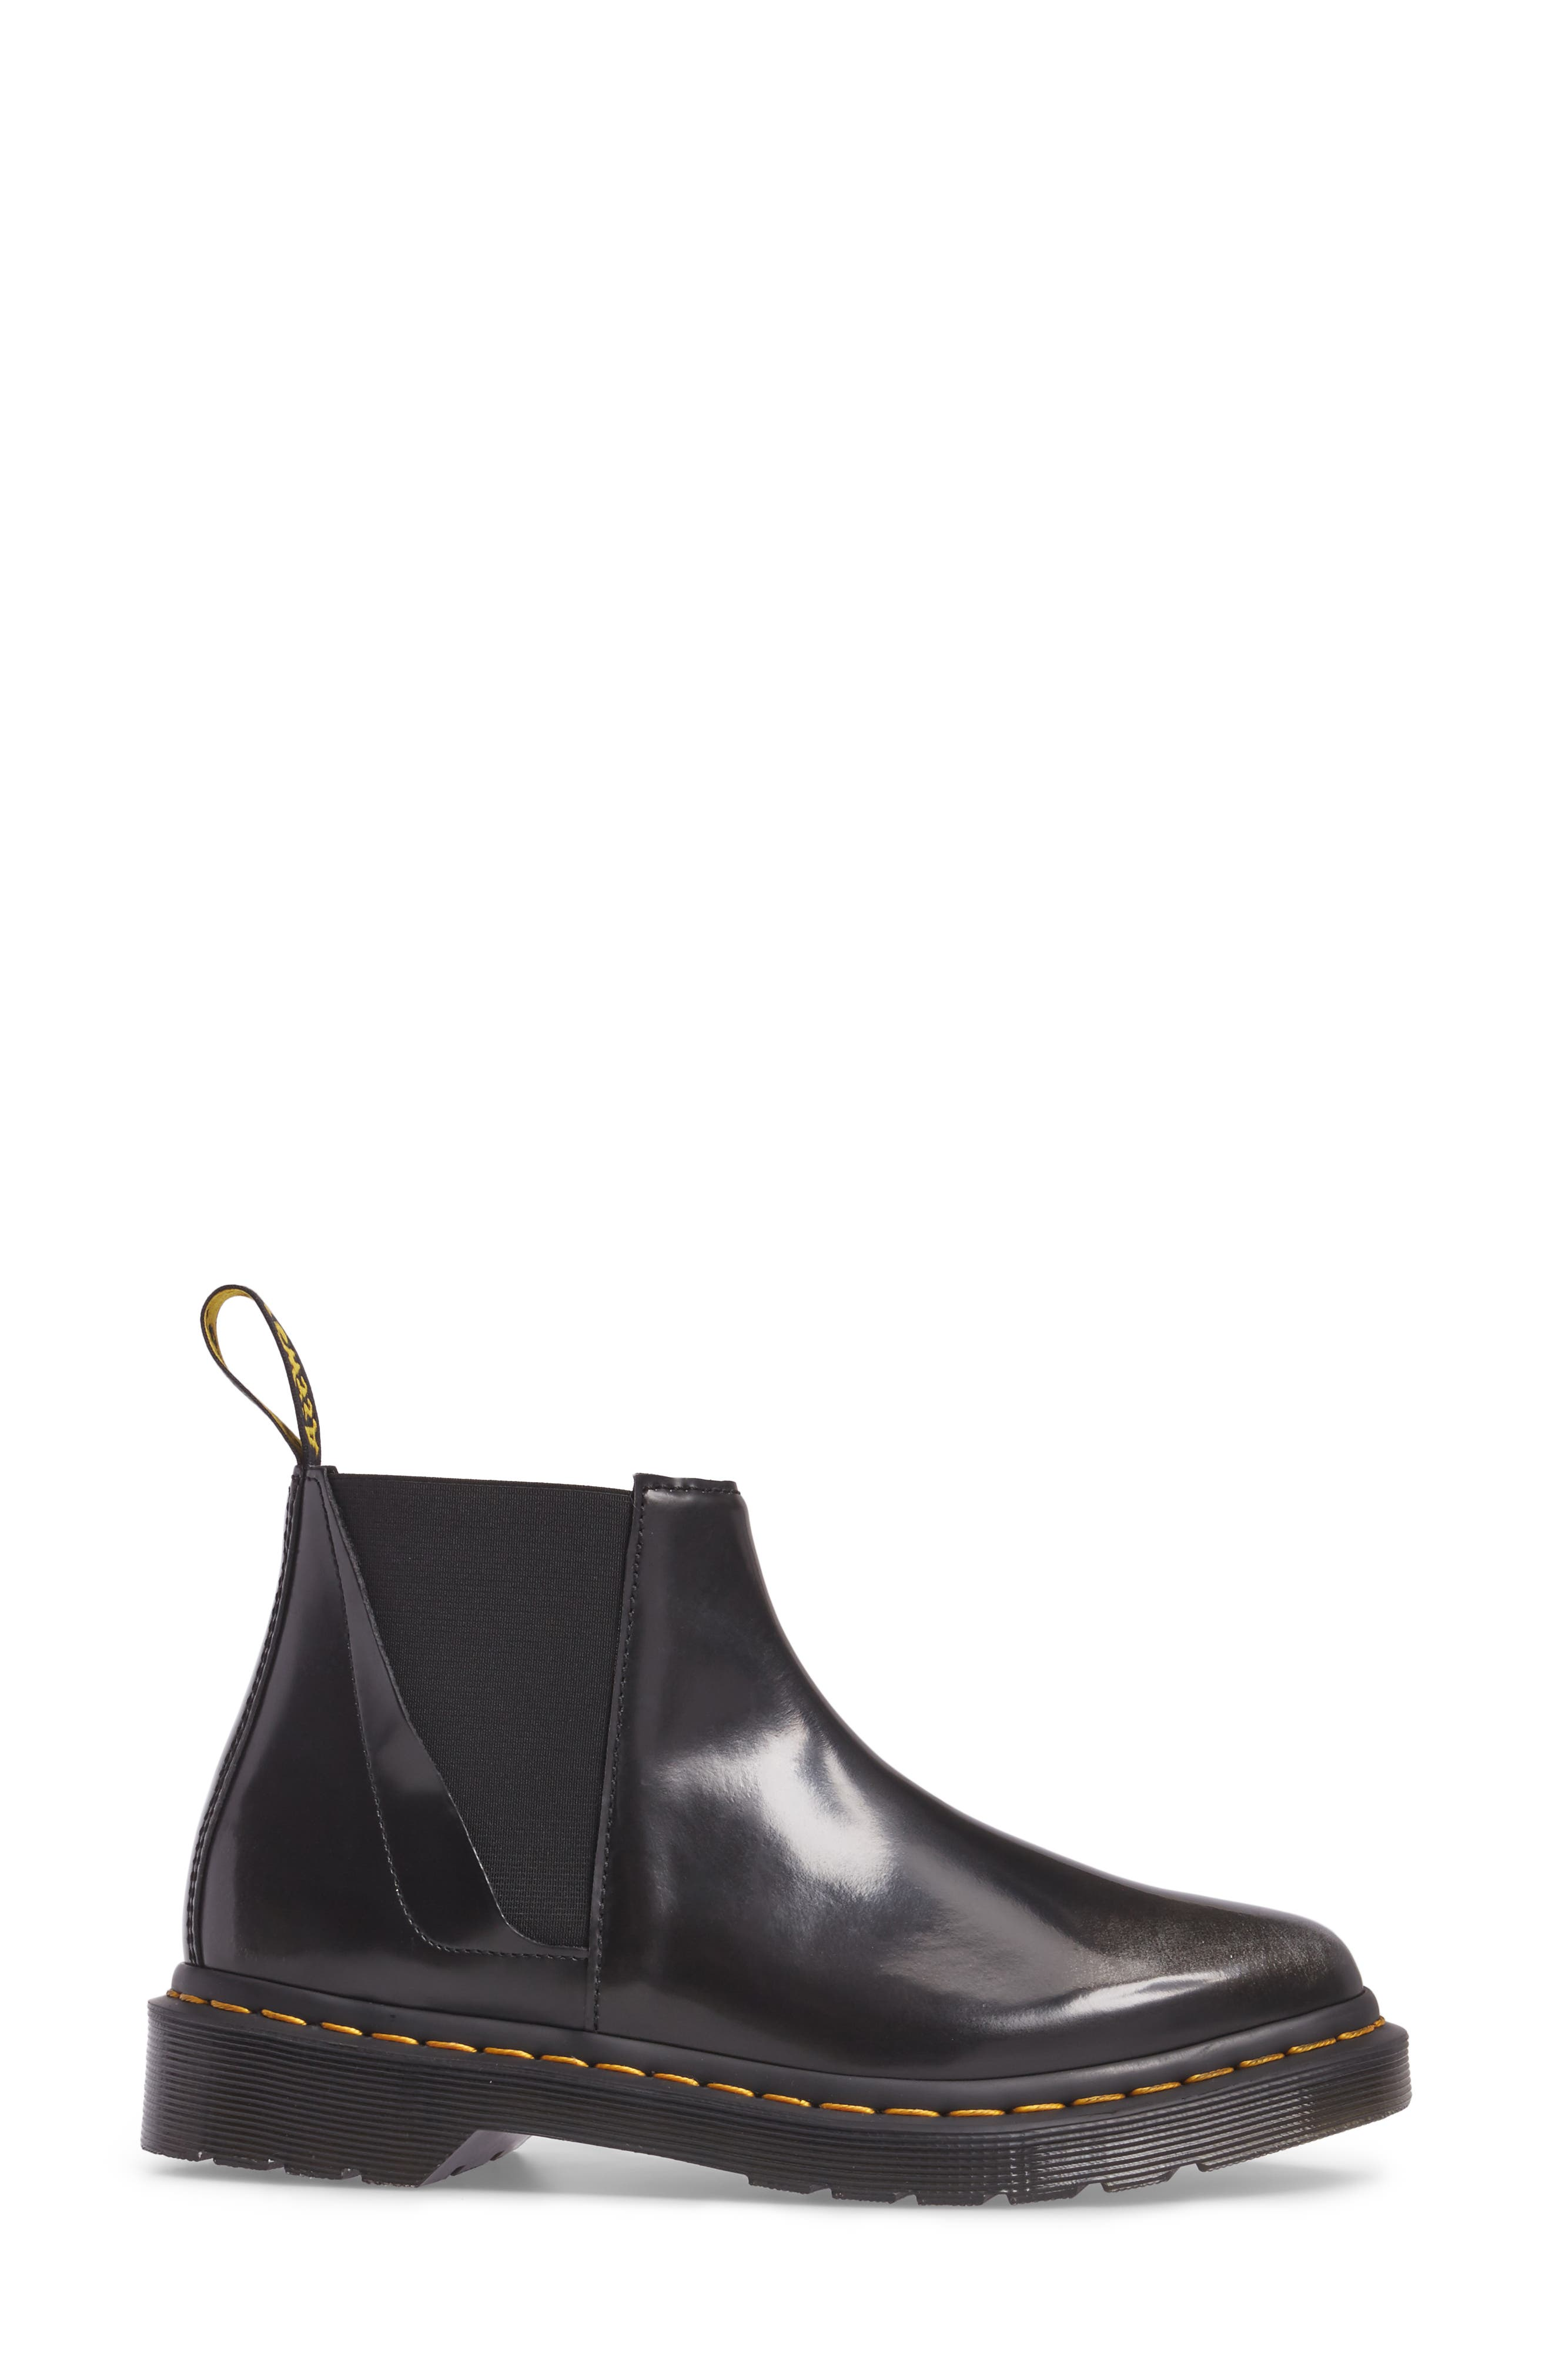 Bianca Smooth Bootie,                             Alternate thumbnail 4, color,                             Black/ Silver Arcadia